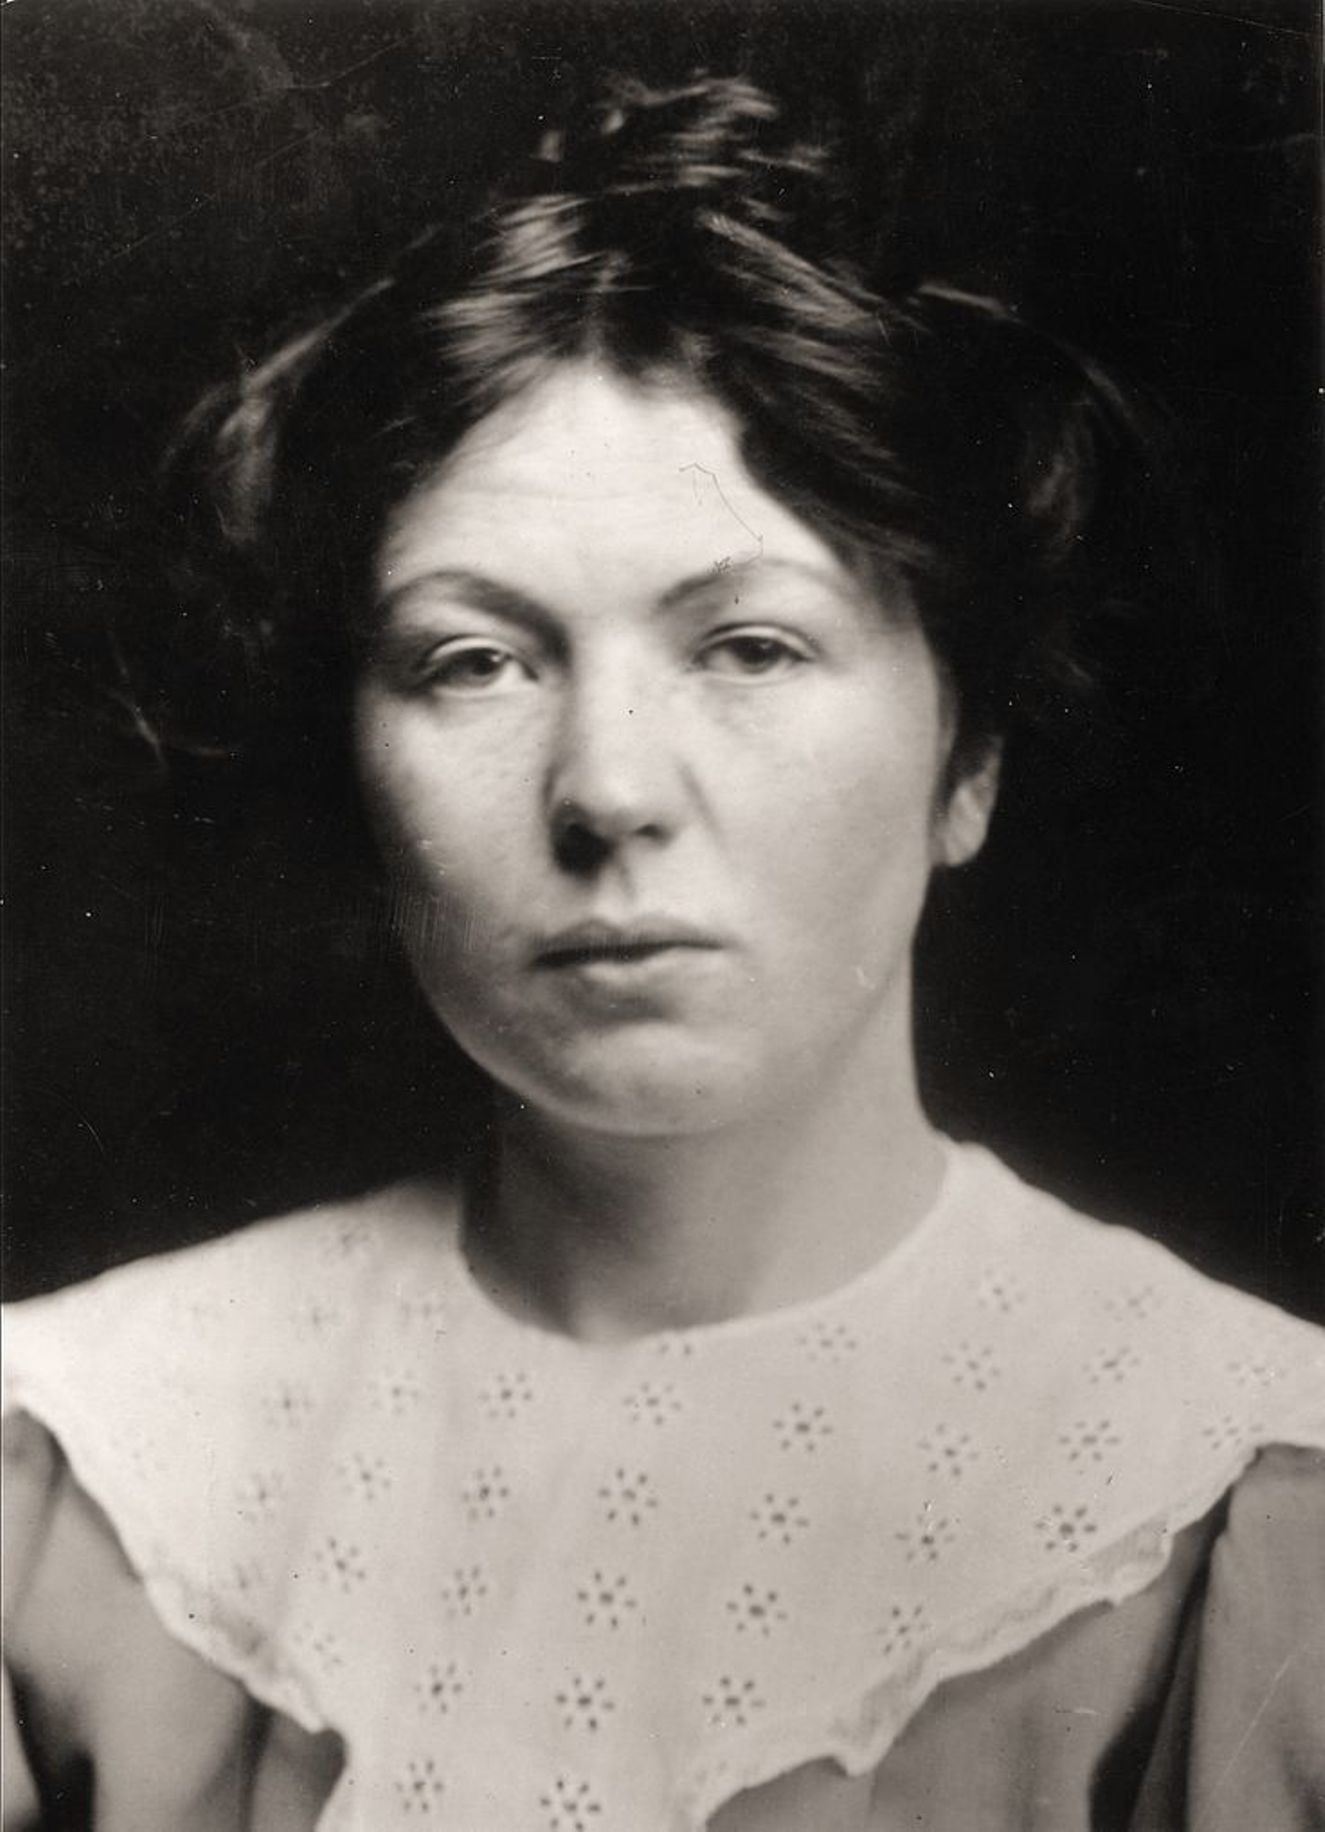 Bits and Bobs: Christabel Pankhurst caused much muttering when she came to stay at Jim Griffiths' house